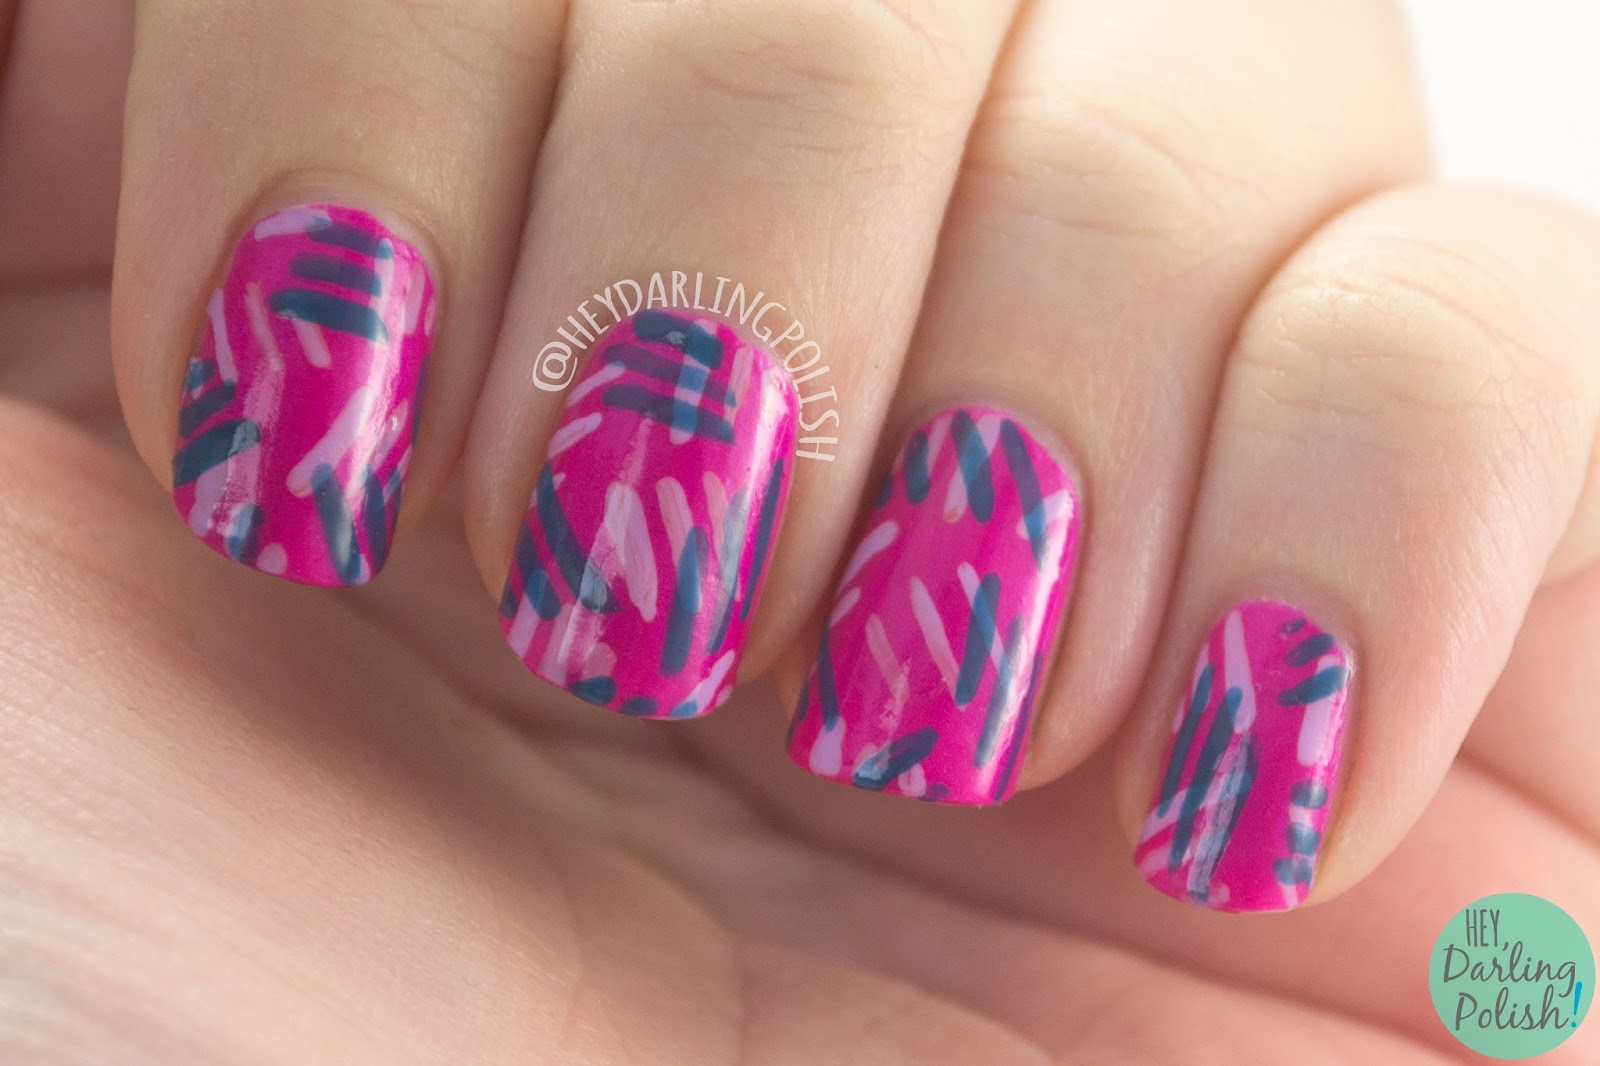 One Line Nail Art : Hey darling polish pink dashes